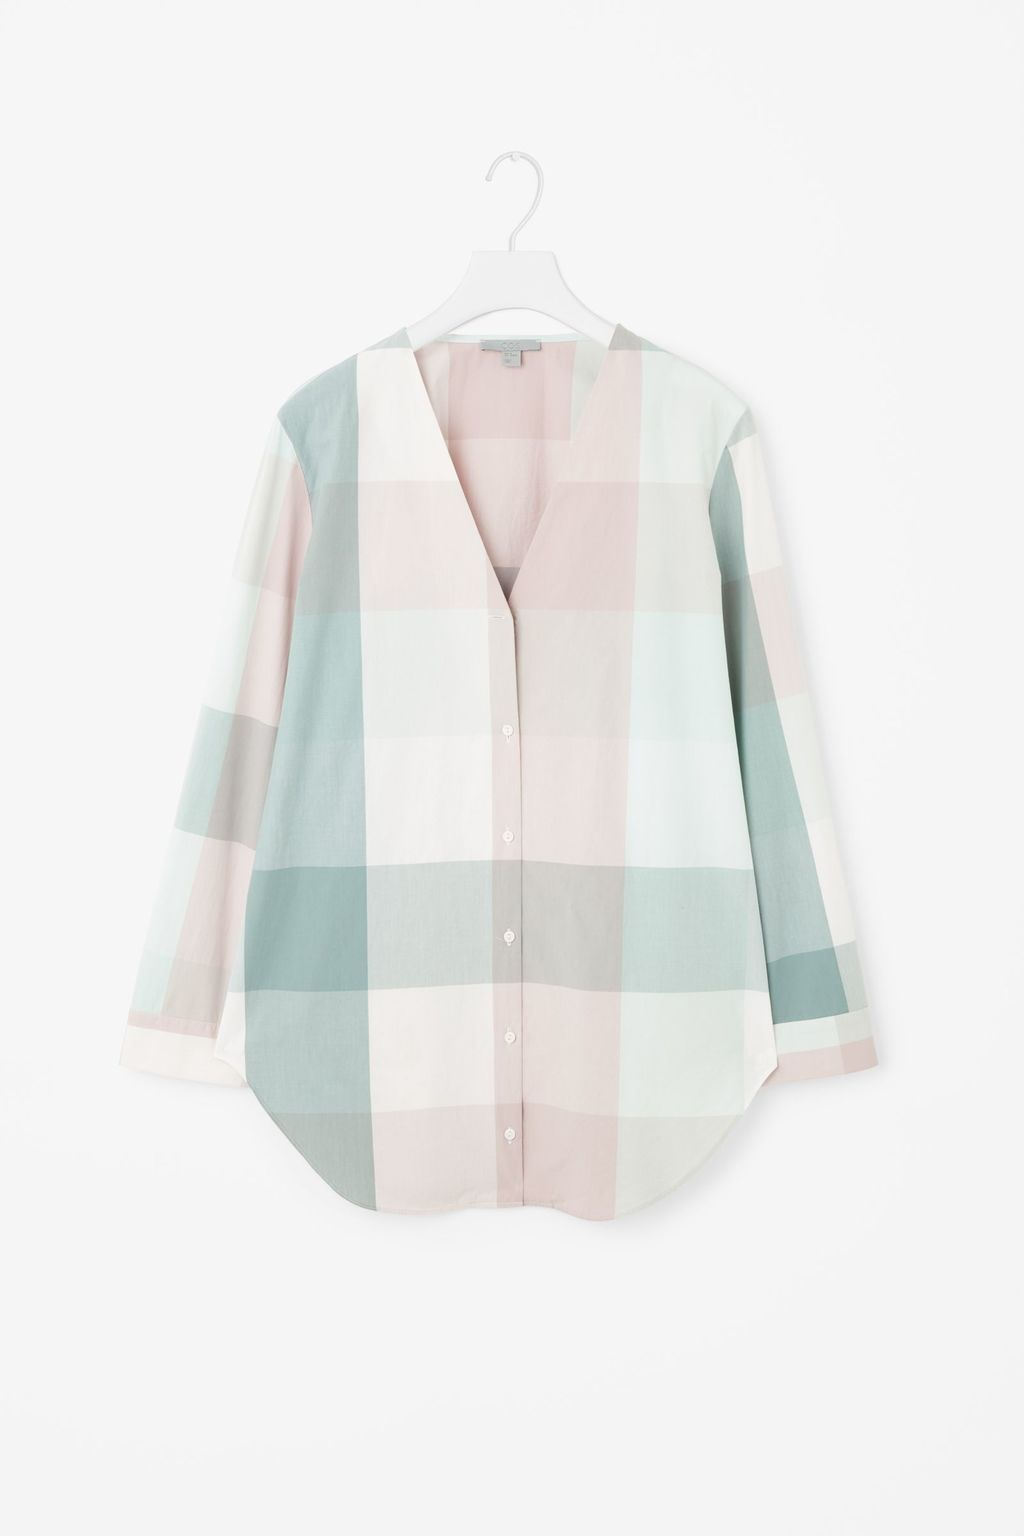 V Neck Checked Shirt - neckline: low v-neck; pattern: checked/gingham; length: below the bottom; style: shirt; predominant colour: white; secondary colour: pistachio; occasions: casual, creative work; fibres: cotton - 100%; fit: loose; sleeve length: long sleeve; sleeve style: standard; texture group: cotton feel fabrics; pattern type: fabric; pattern size: standard; season: s/s 2016; wardrobe: highlight